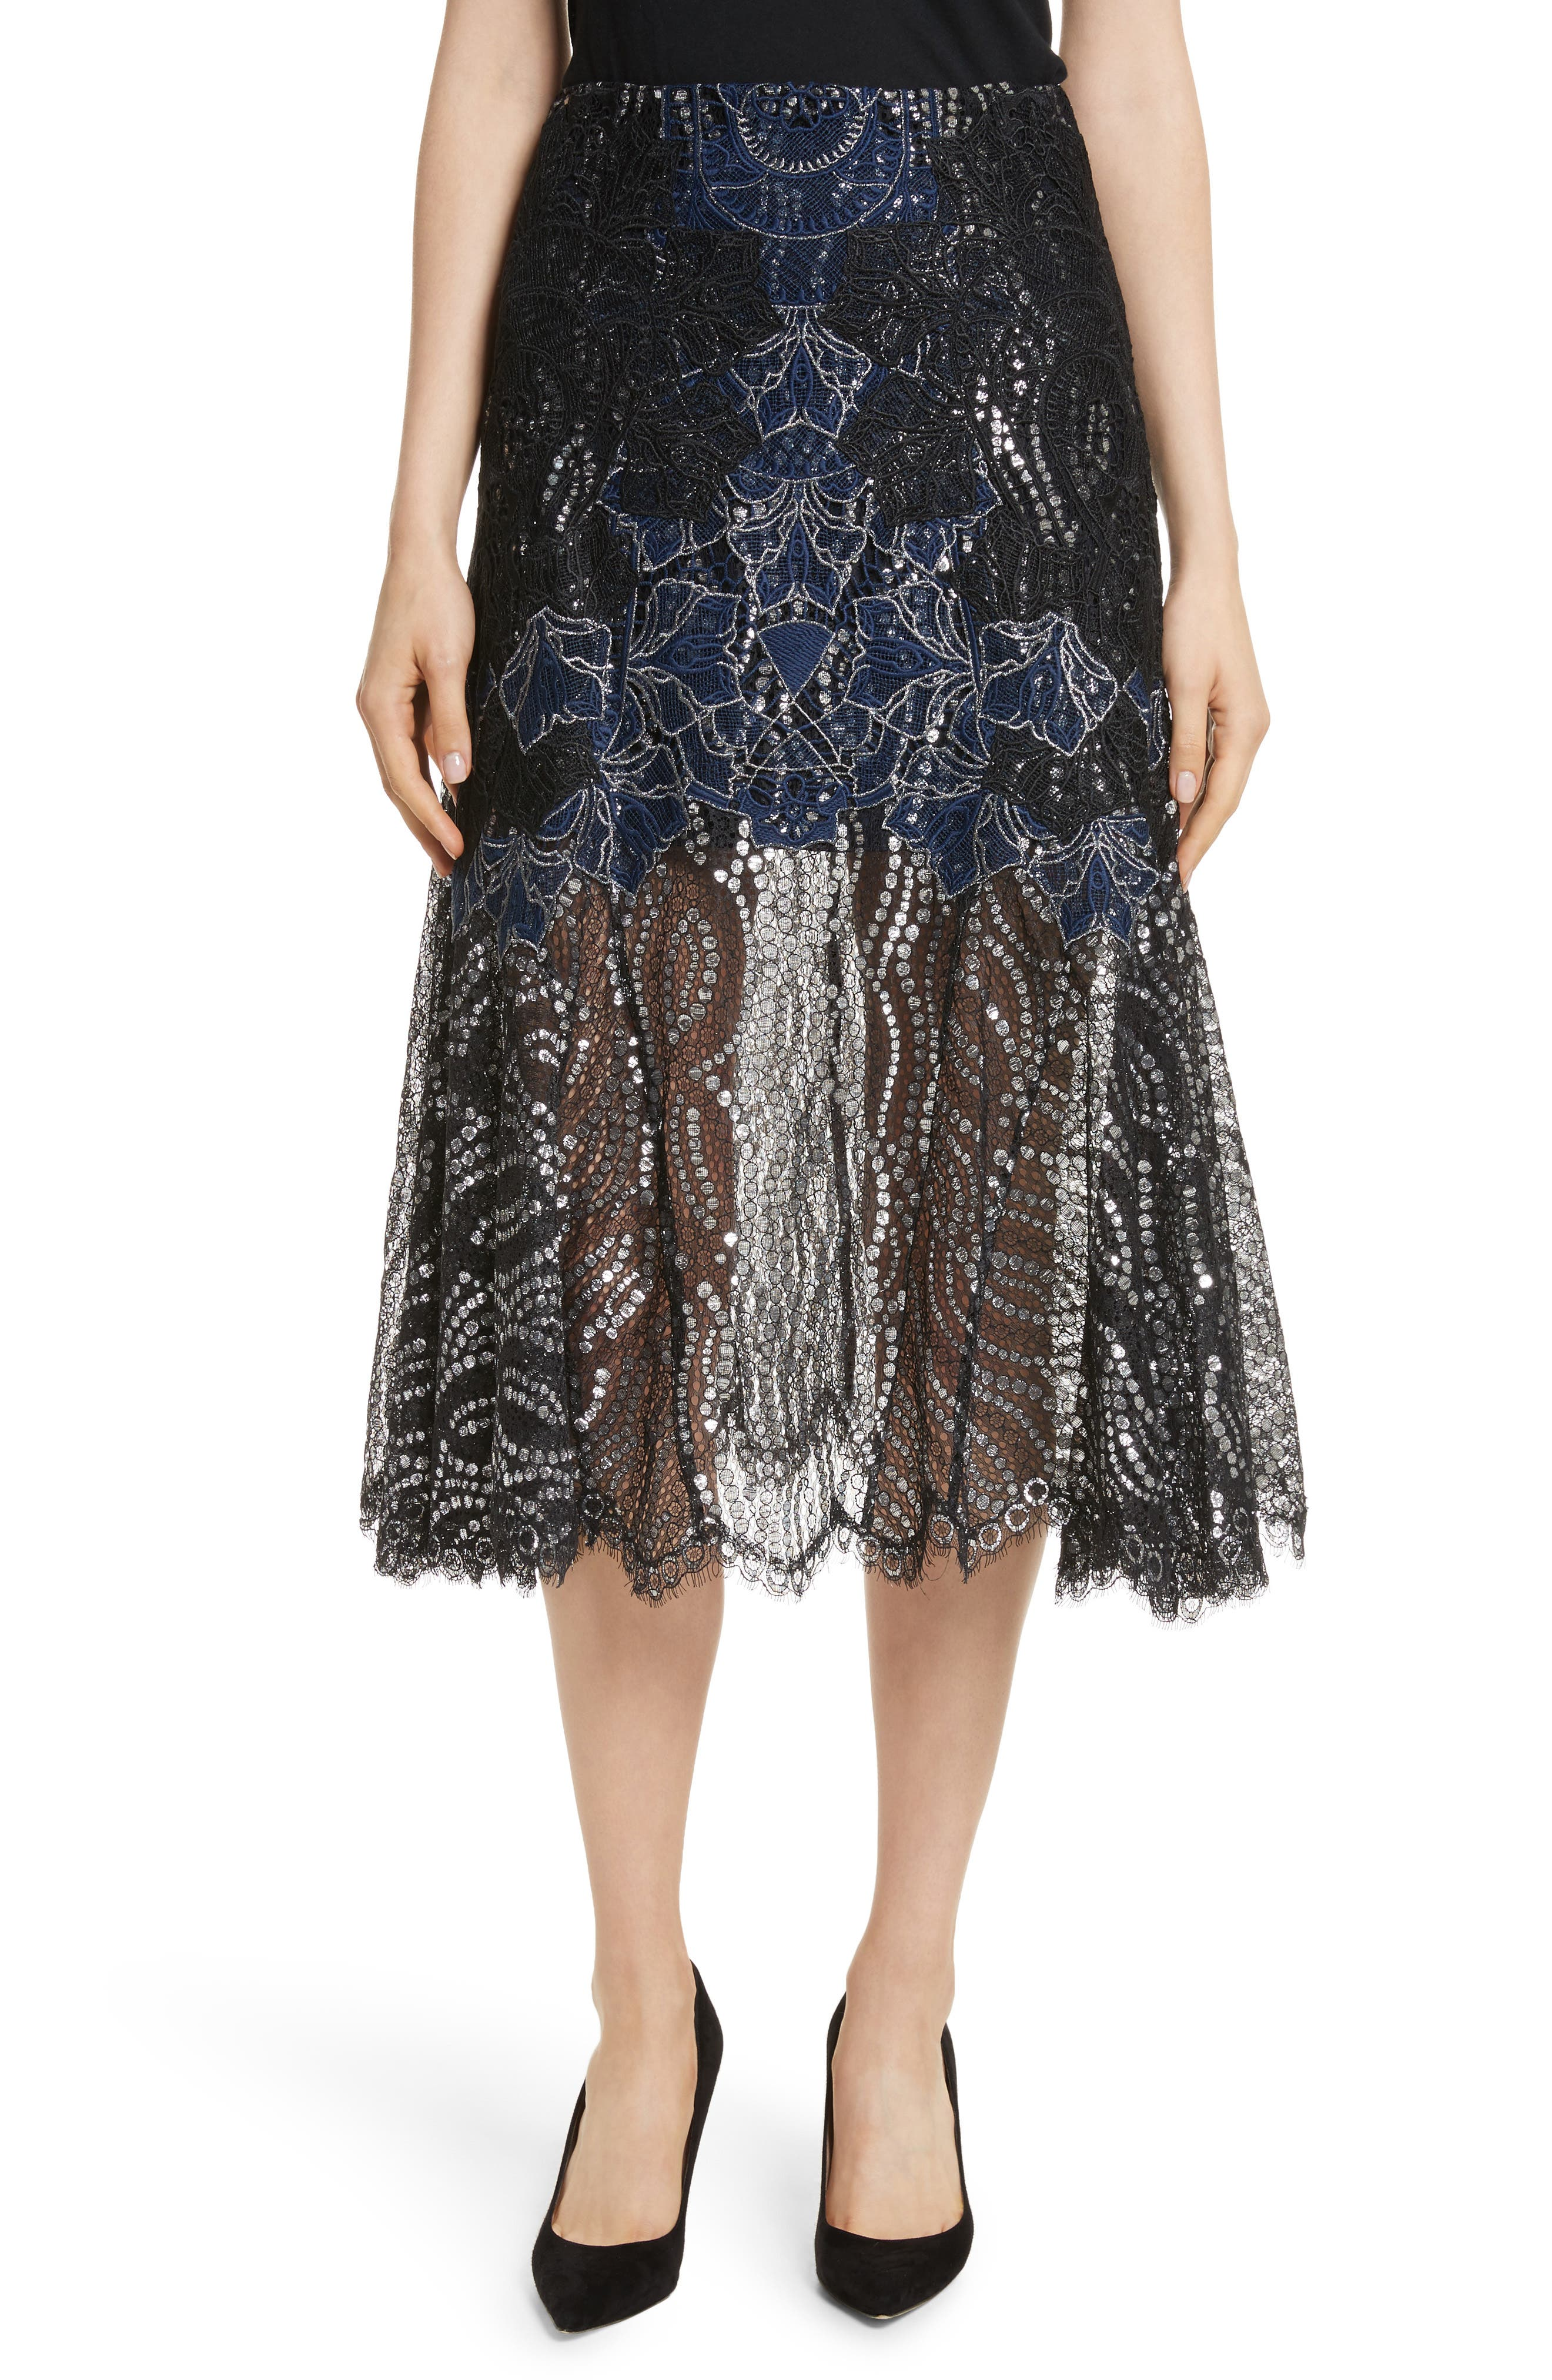 Alternate Image 1 Selected - Jonathan Simkhai Dimensional Metallic Appliqué Trumpet Skirt